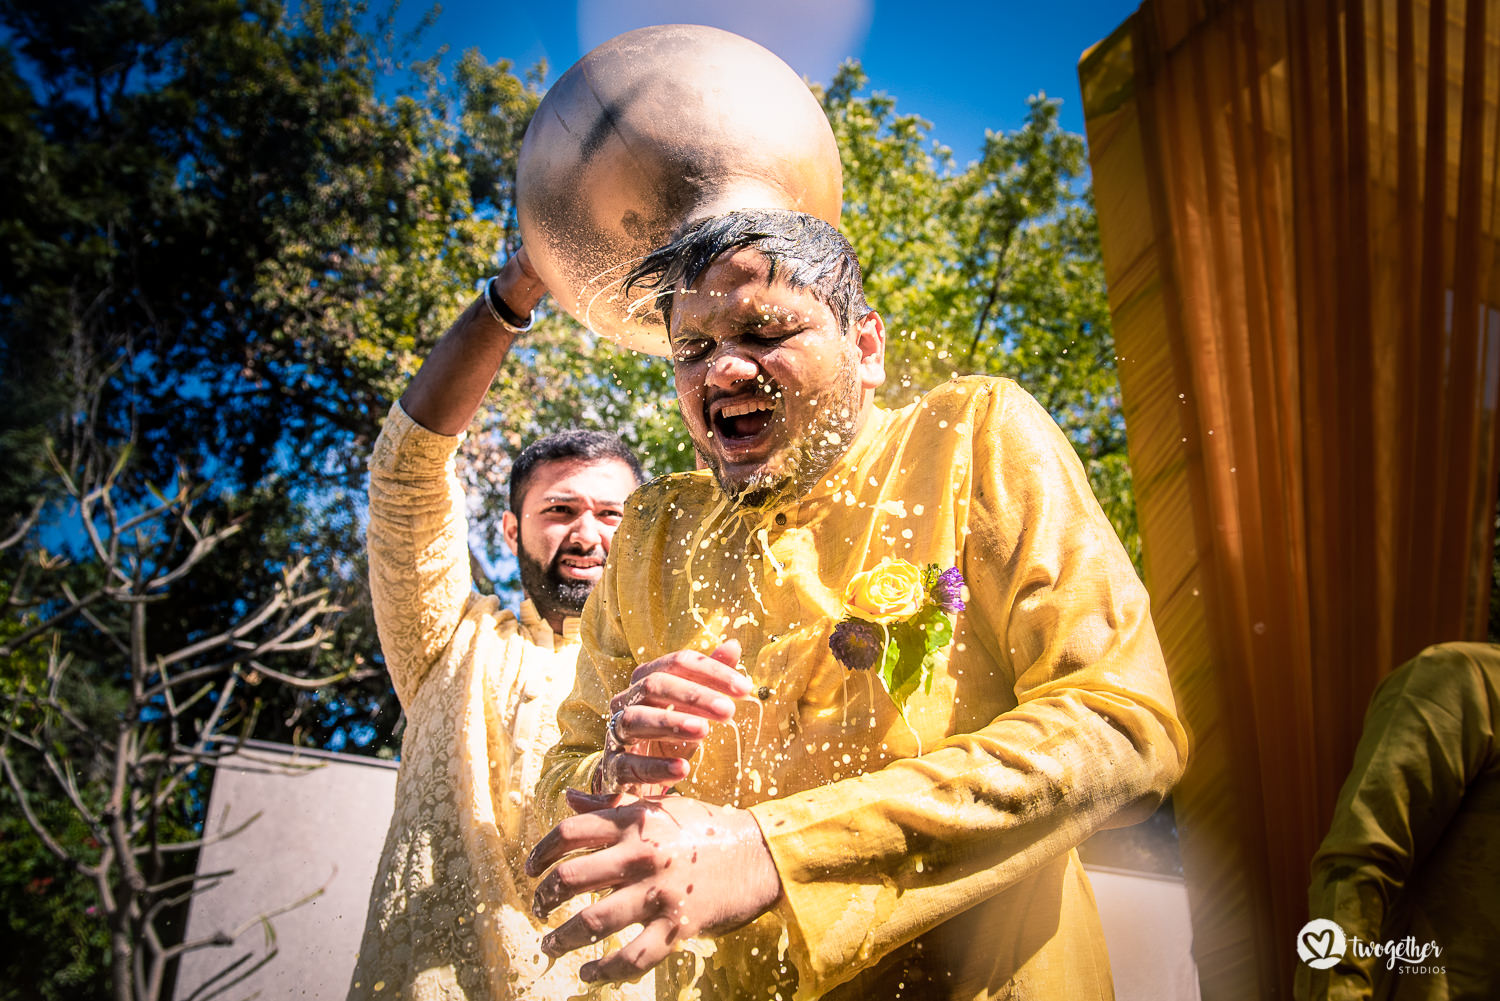 Groom haldi at a Jaipur destination wedding.